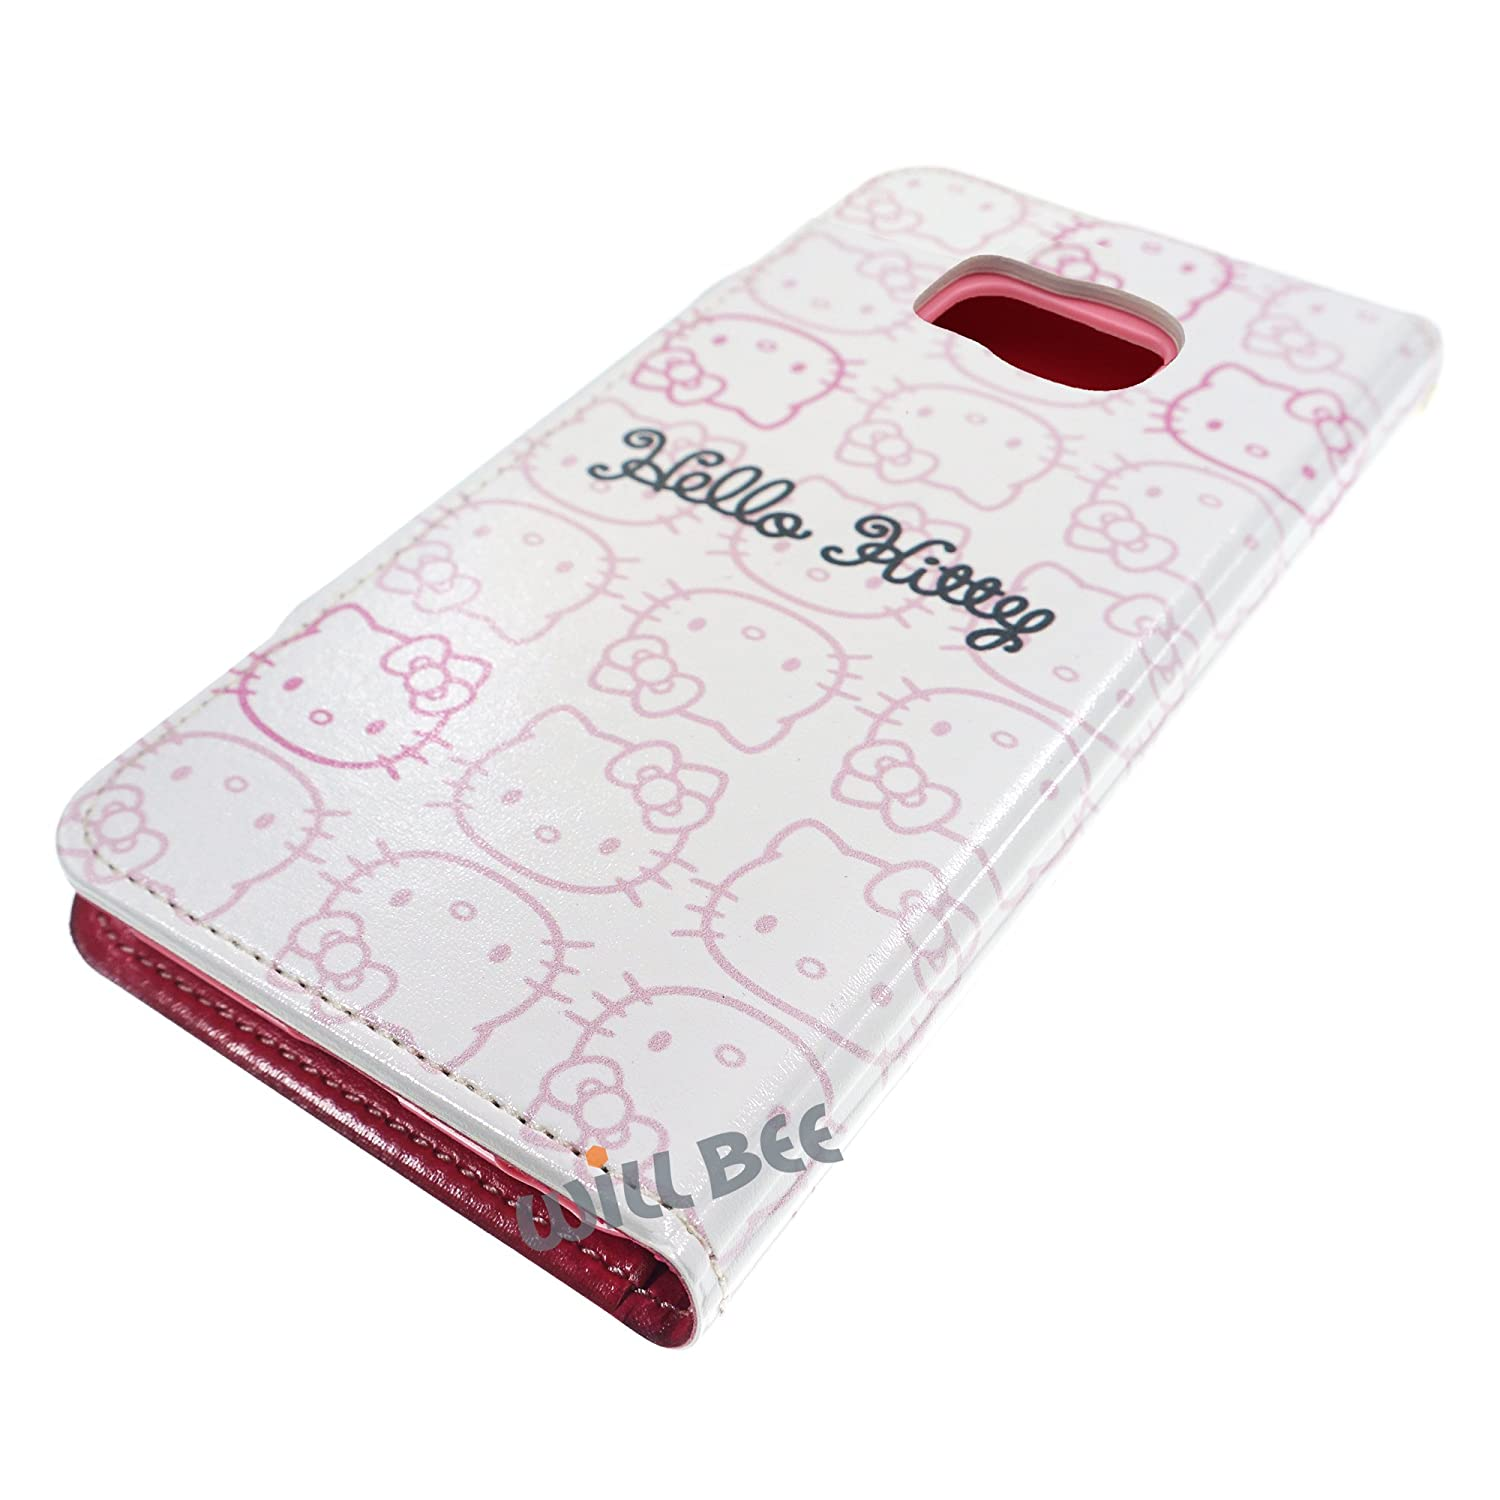 Double Sided Wallet 5.1 - Wallet Body Dot Pink Galaxy S6 Edge Case HELLO KITTY Cute Diary Flip Anti-Shock//Mirror // Coin Pocket Cover for for Samsung Galaxy S6 Edge